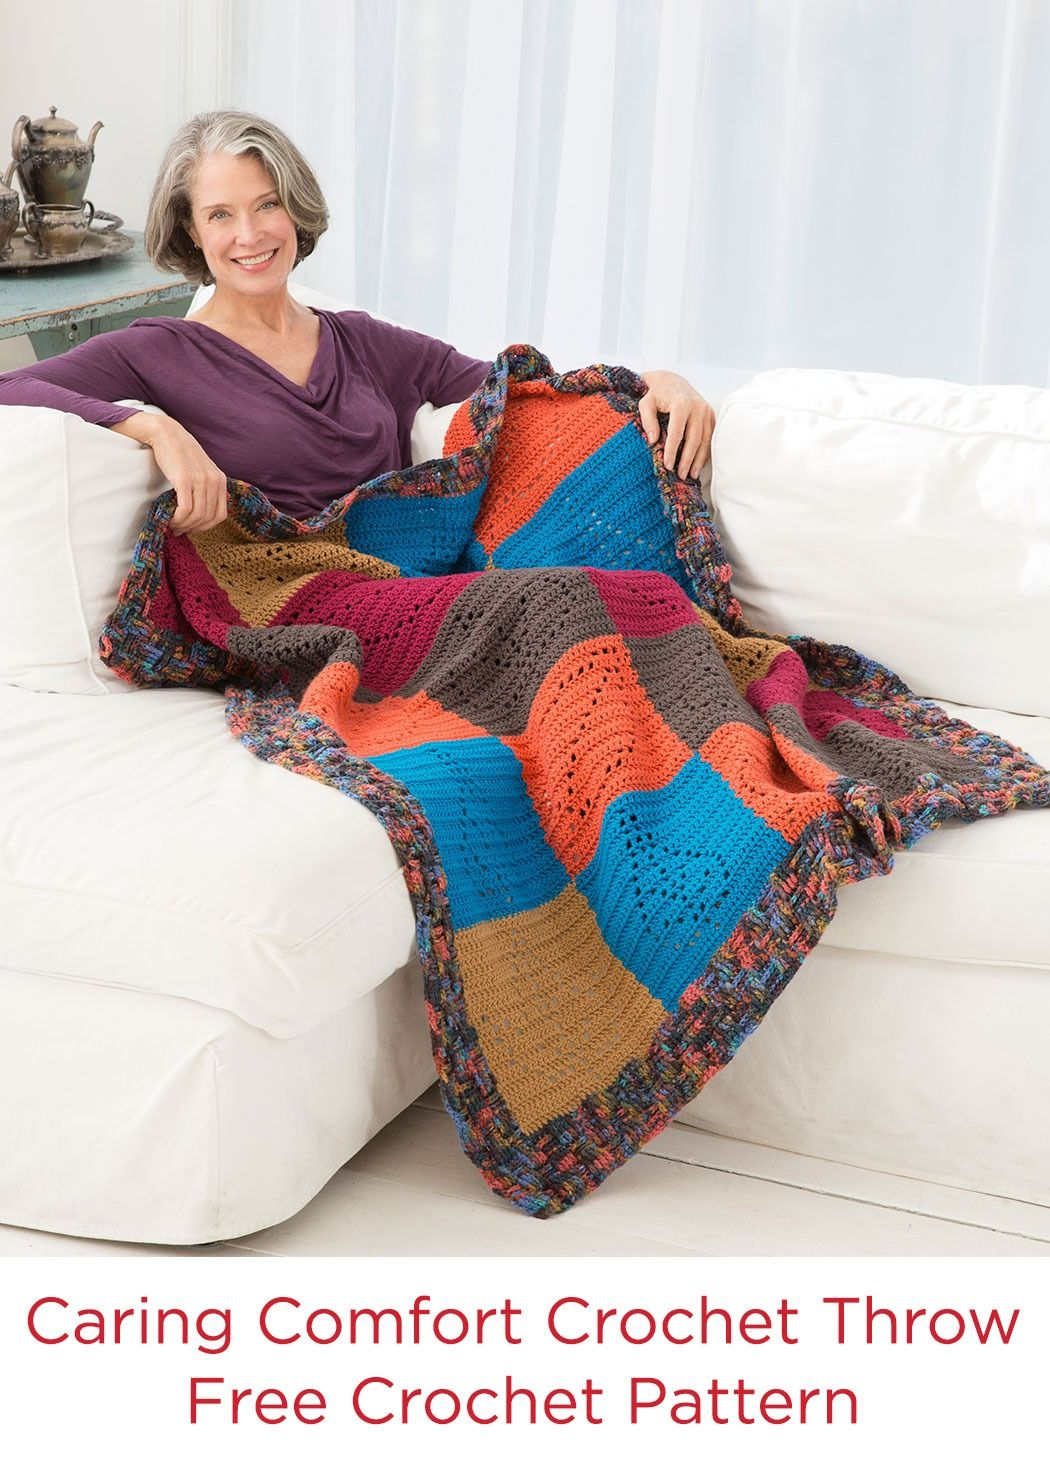 Caring Comfort Crochet Throw Free Crochet Pattern in Red Heart Super